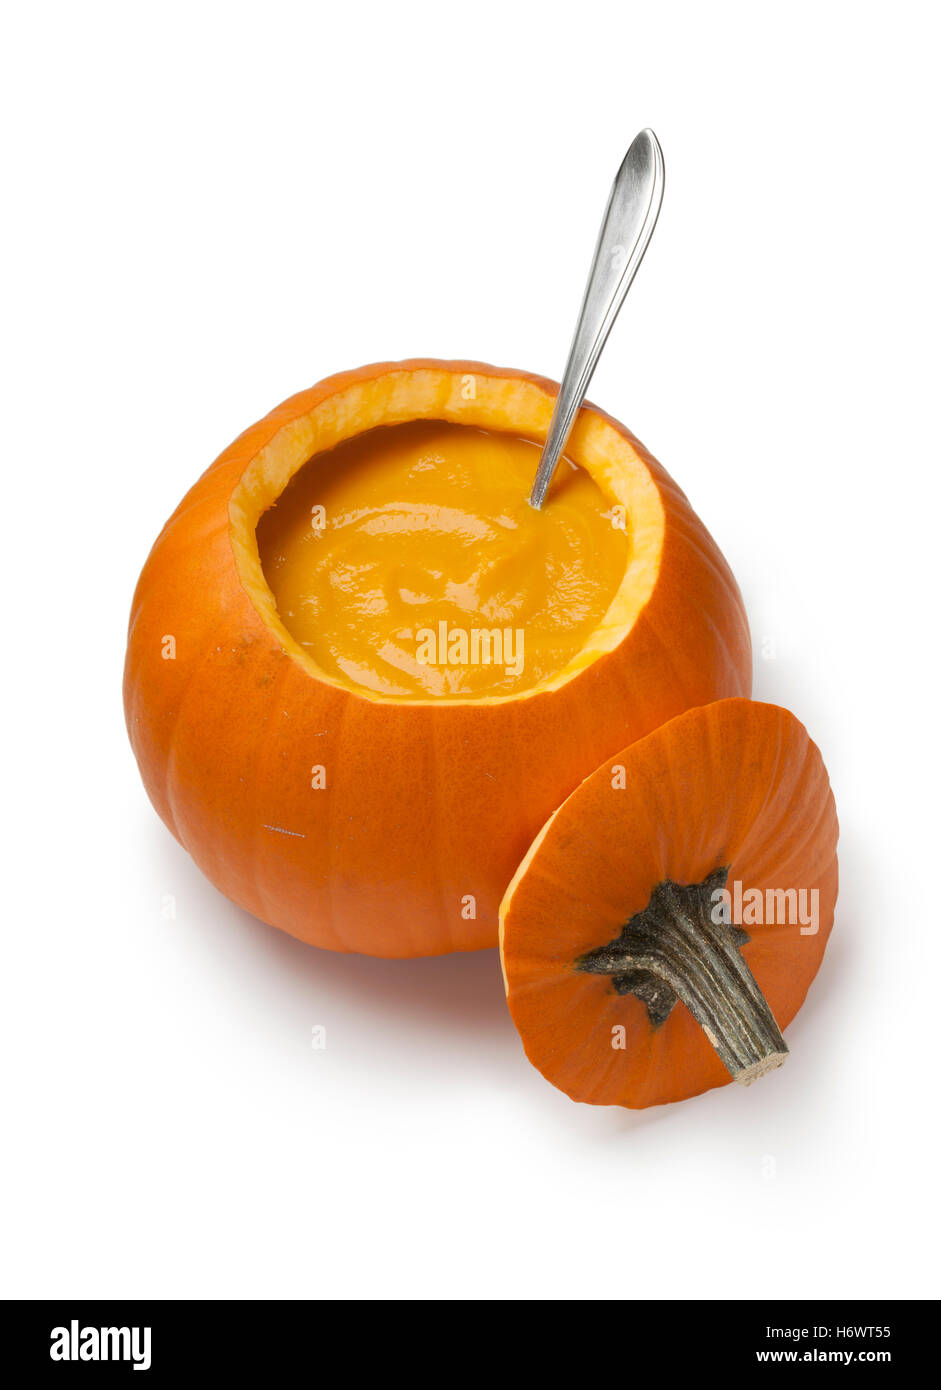 Fresh made pumpkin soup in a orange pumpkin on white background - Stock Image